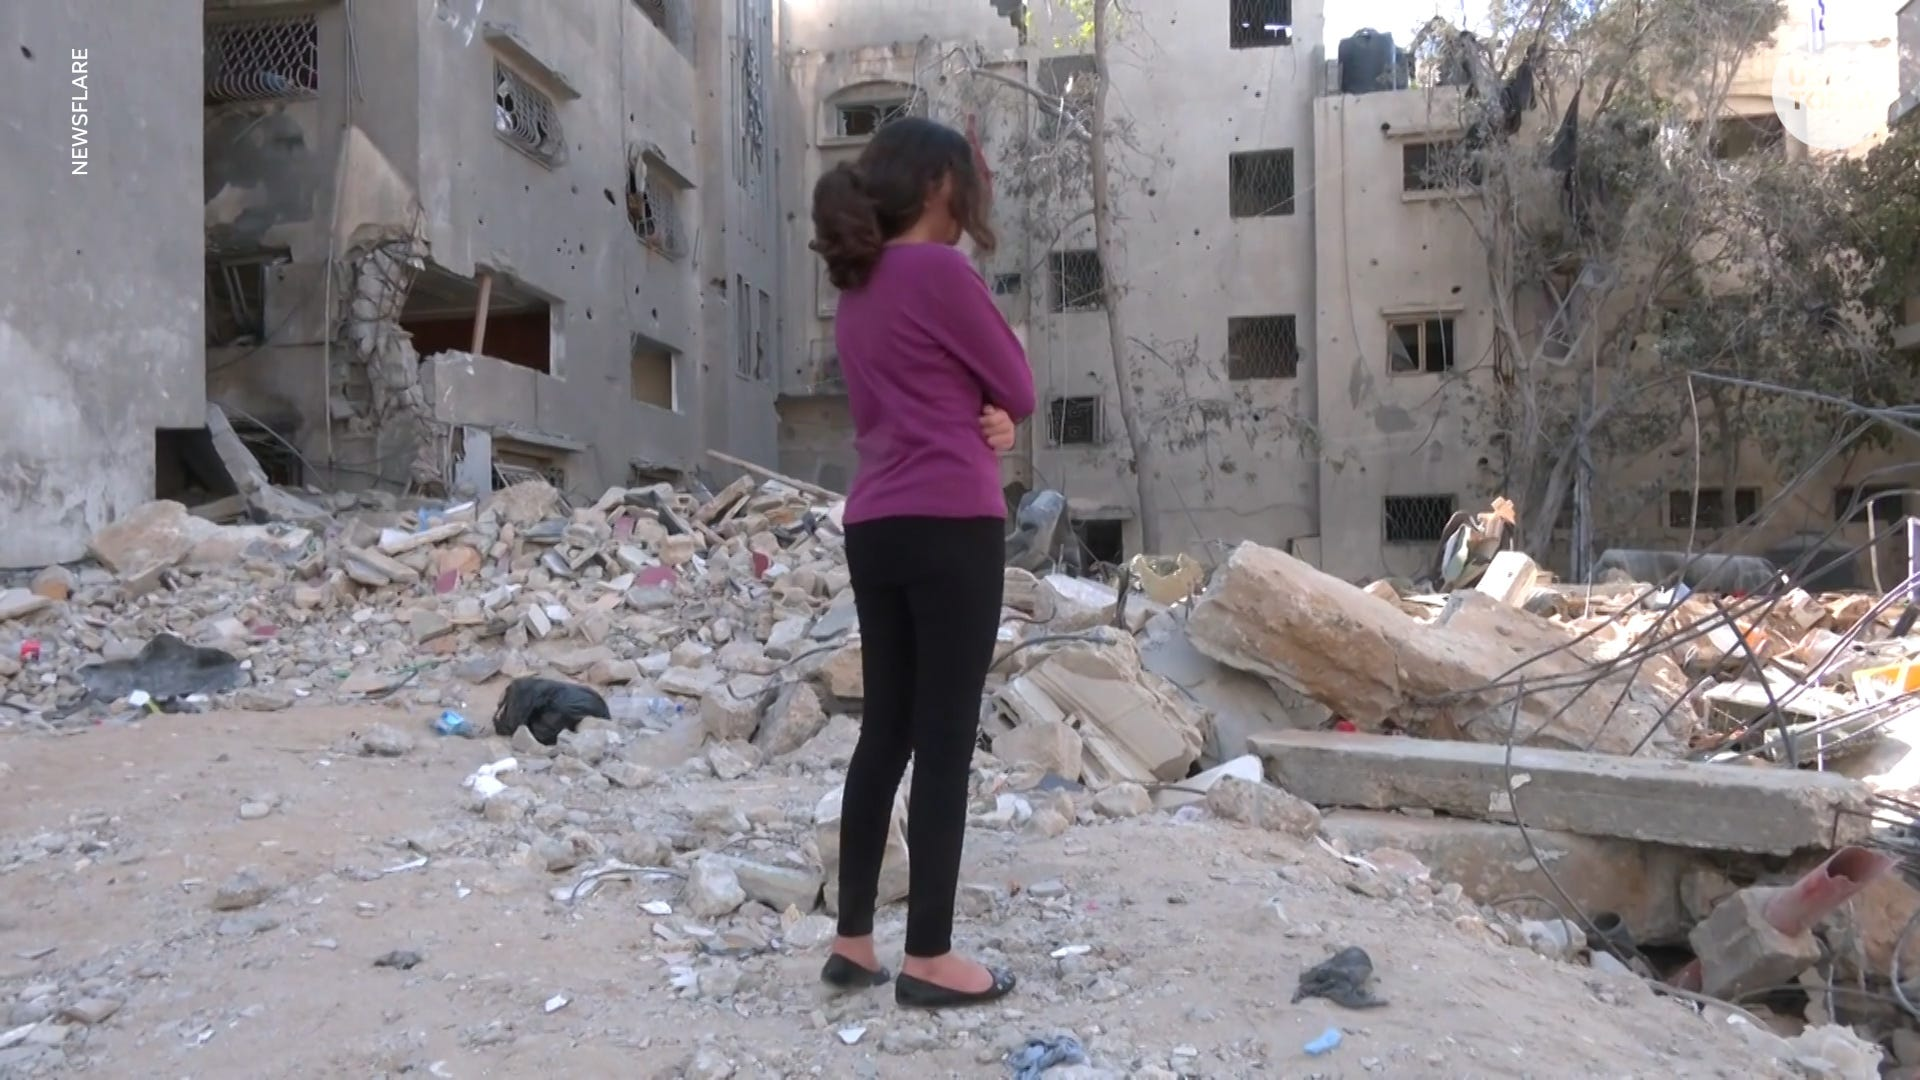 'We don't deserve to die': 10-year-old shares terrifying details from Gaza streets